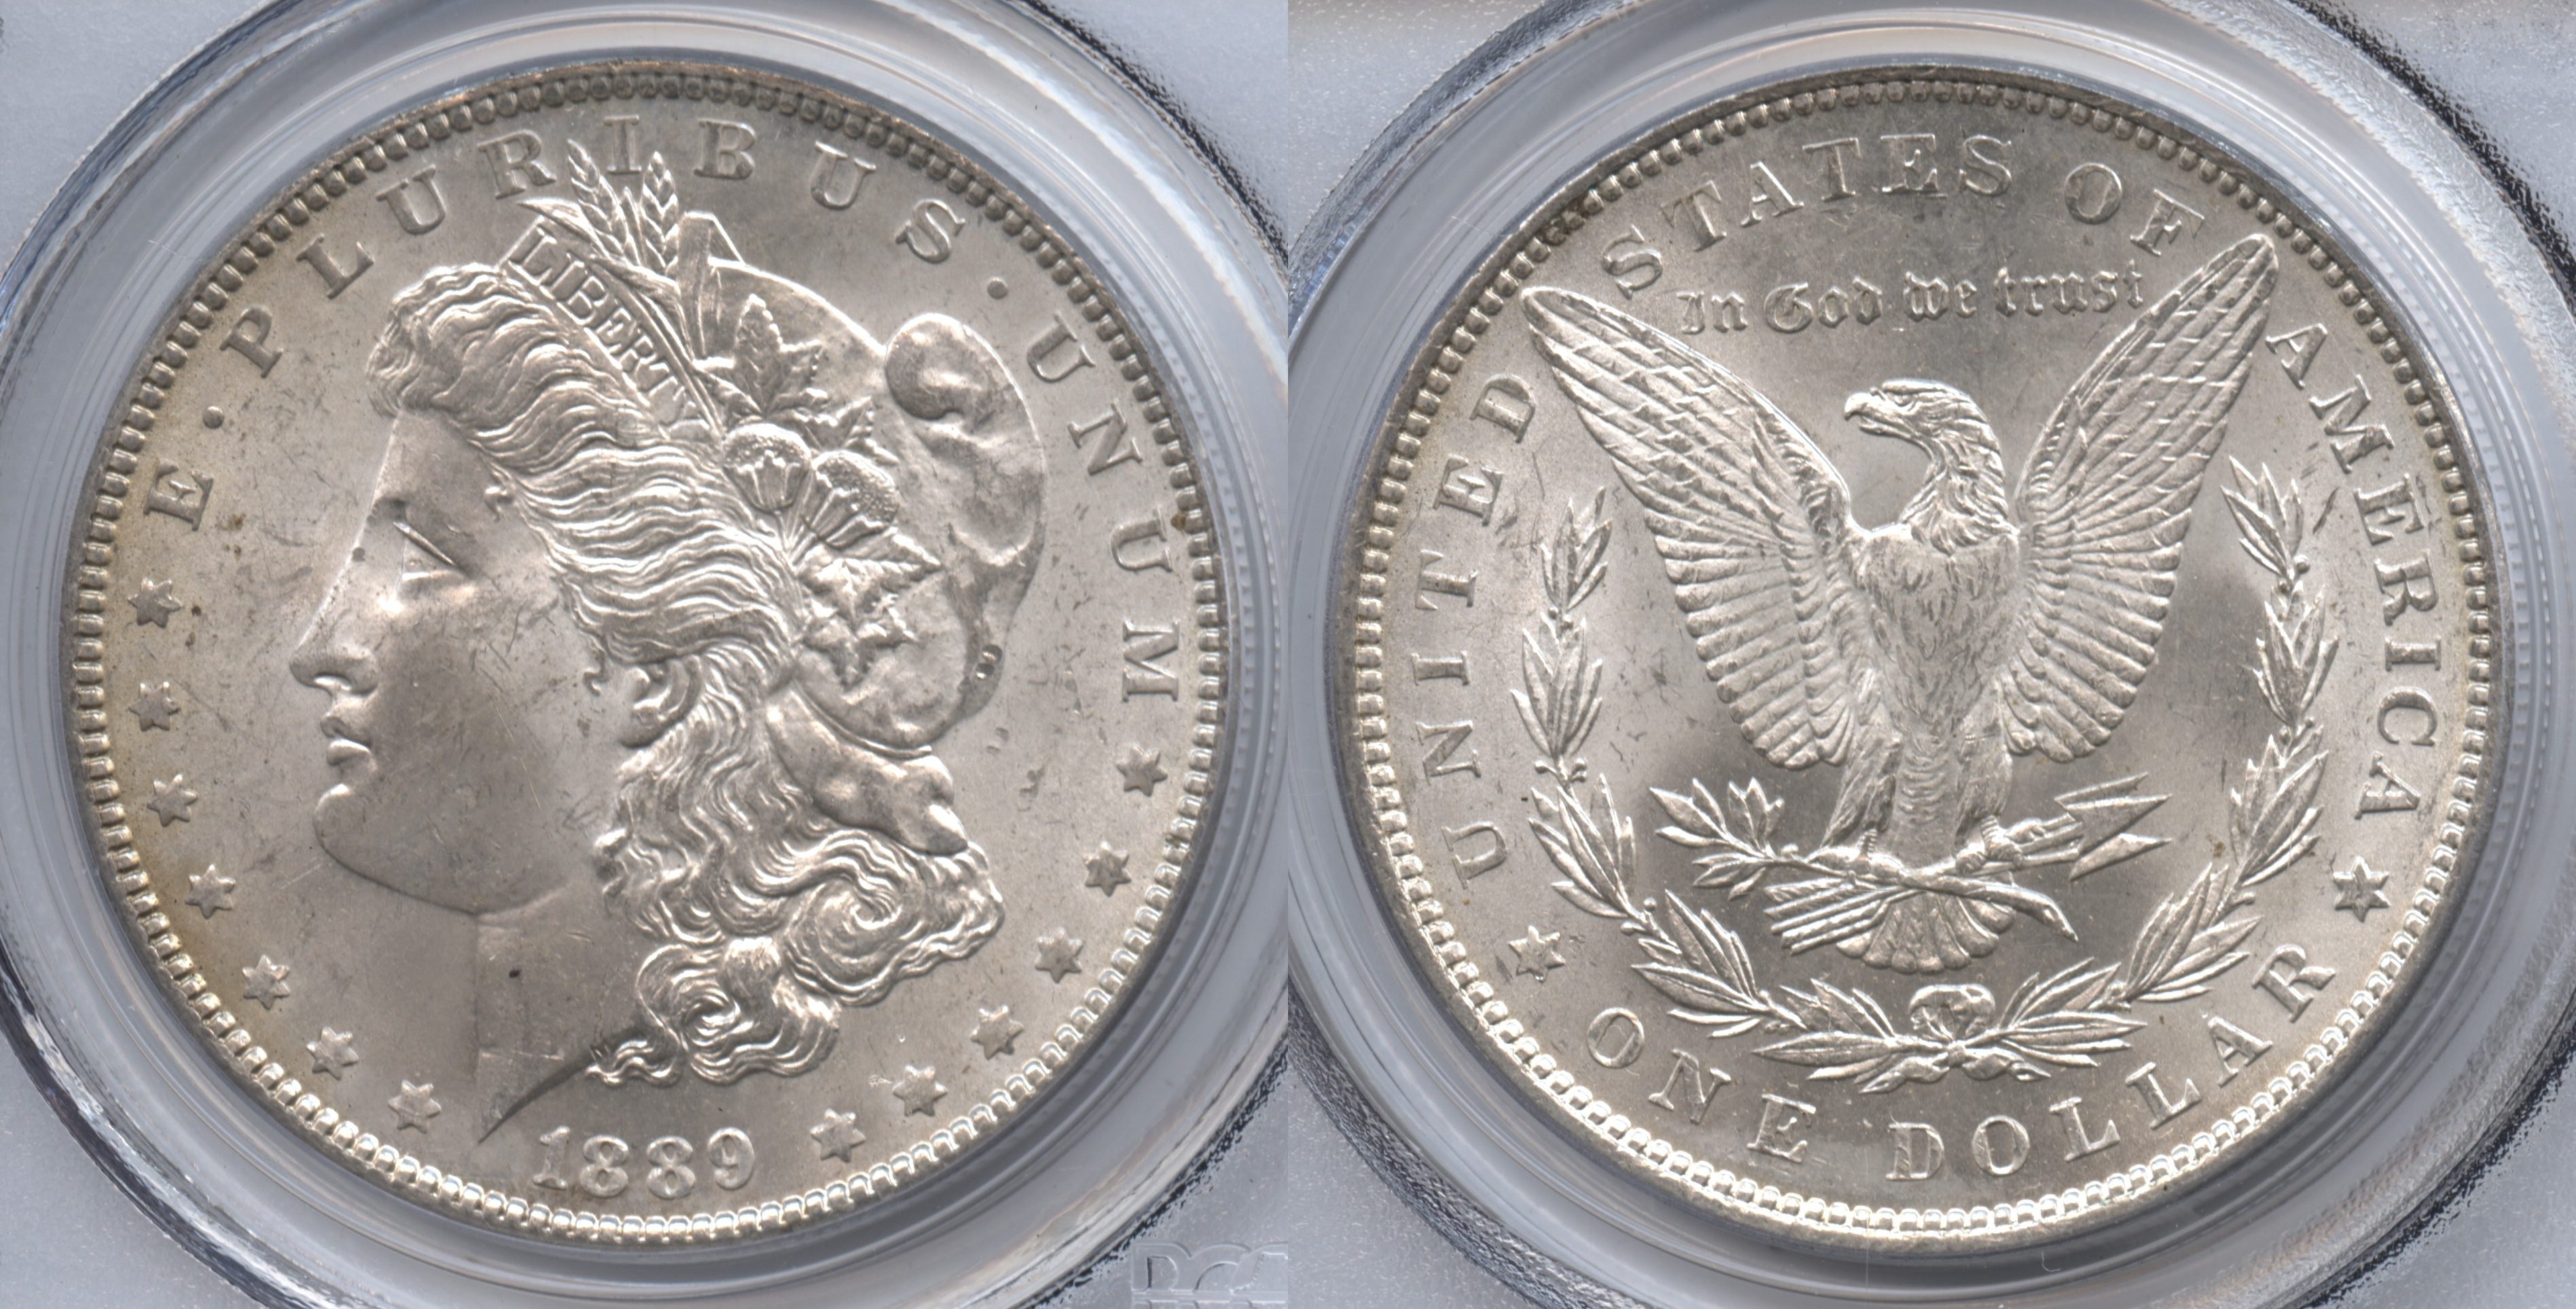 1889 Morgan Silver Dollar PCGS MS-63 VAM-21, Doubled Ear and Lower Cotton Leaves, Far Date